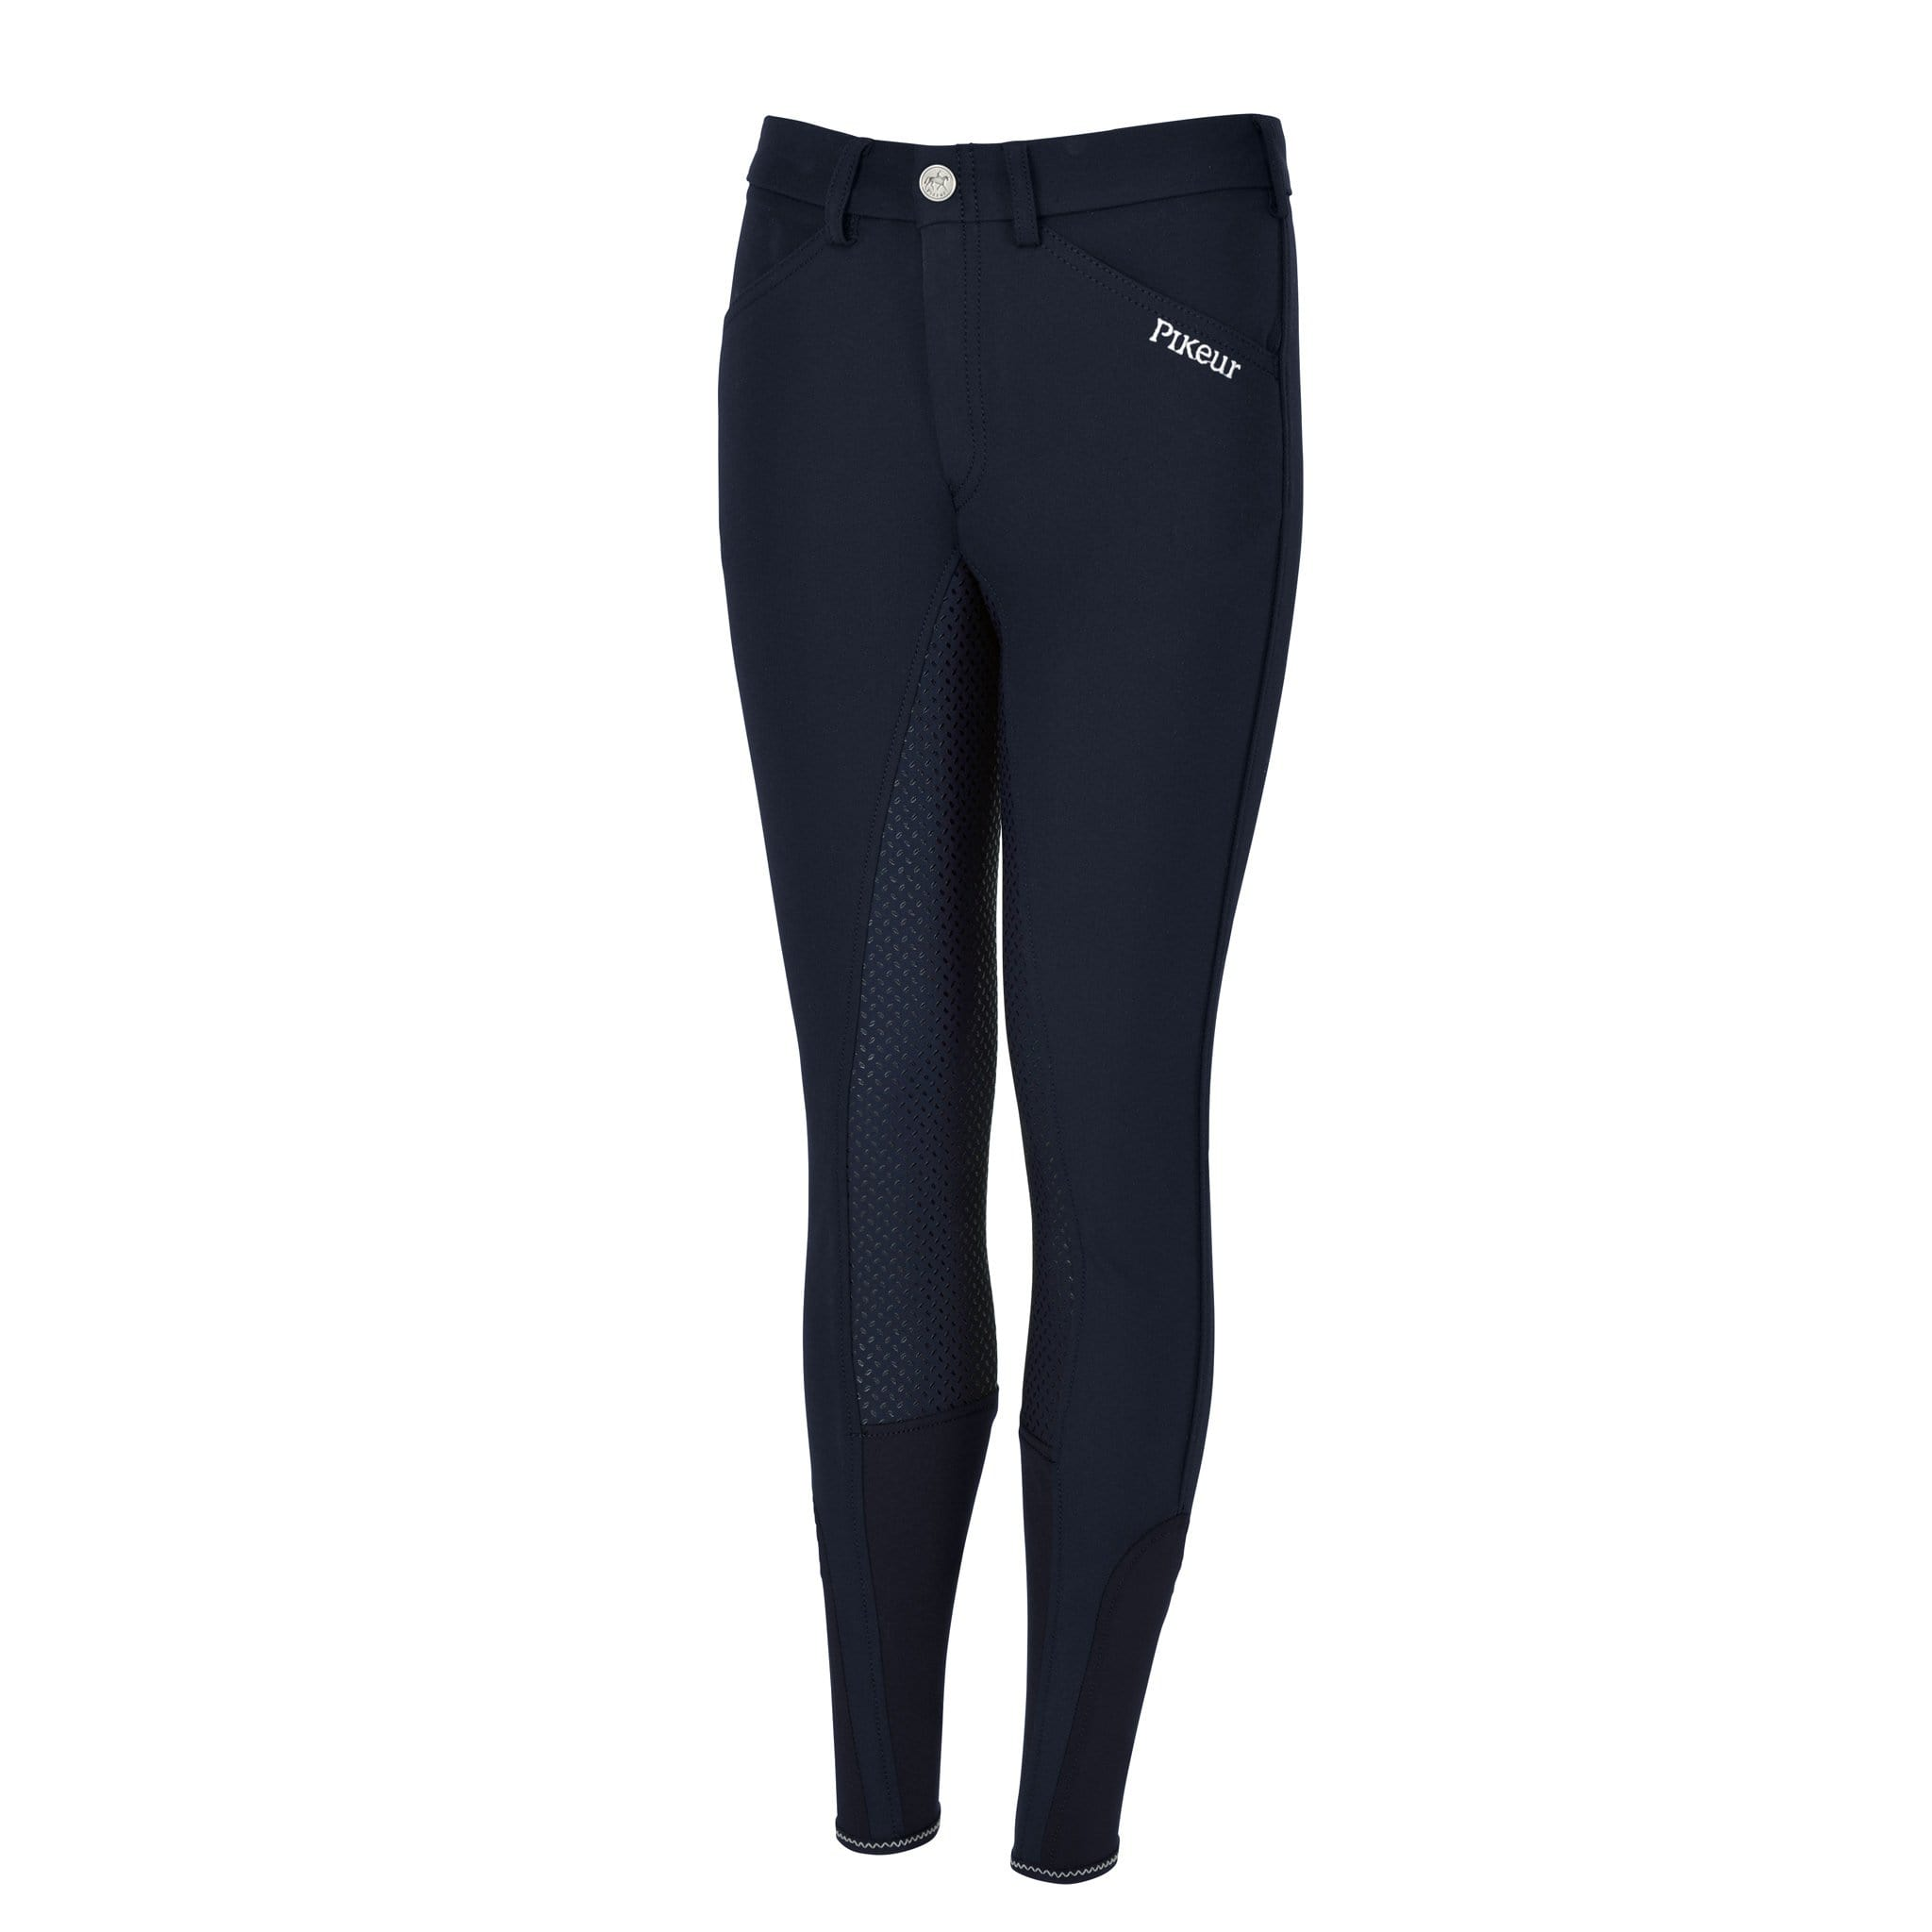 Pikeur Braddy Girls Grip Full Seat Breeches Nightblue Front View 149706